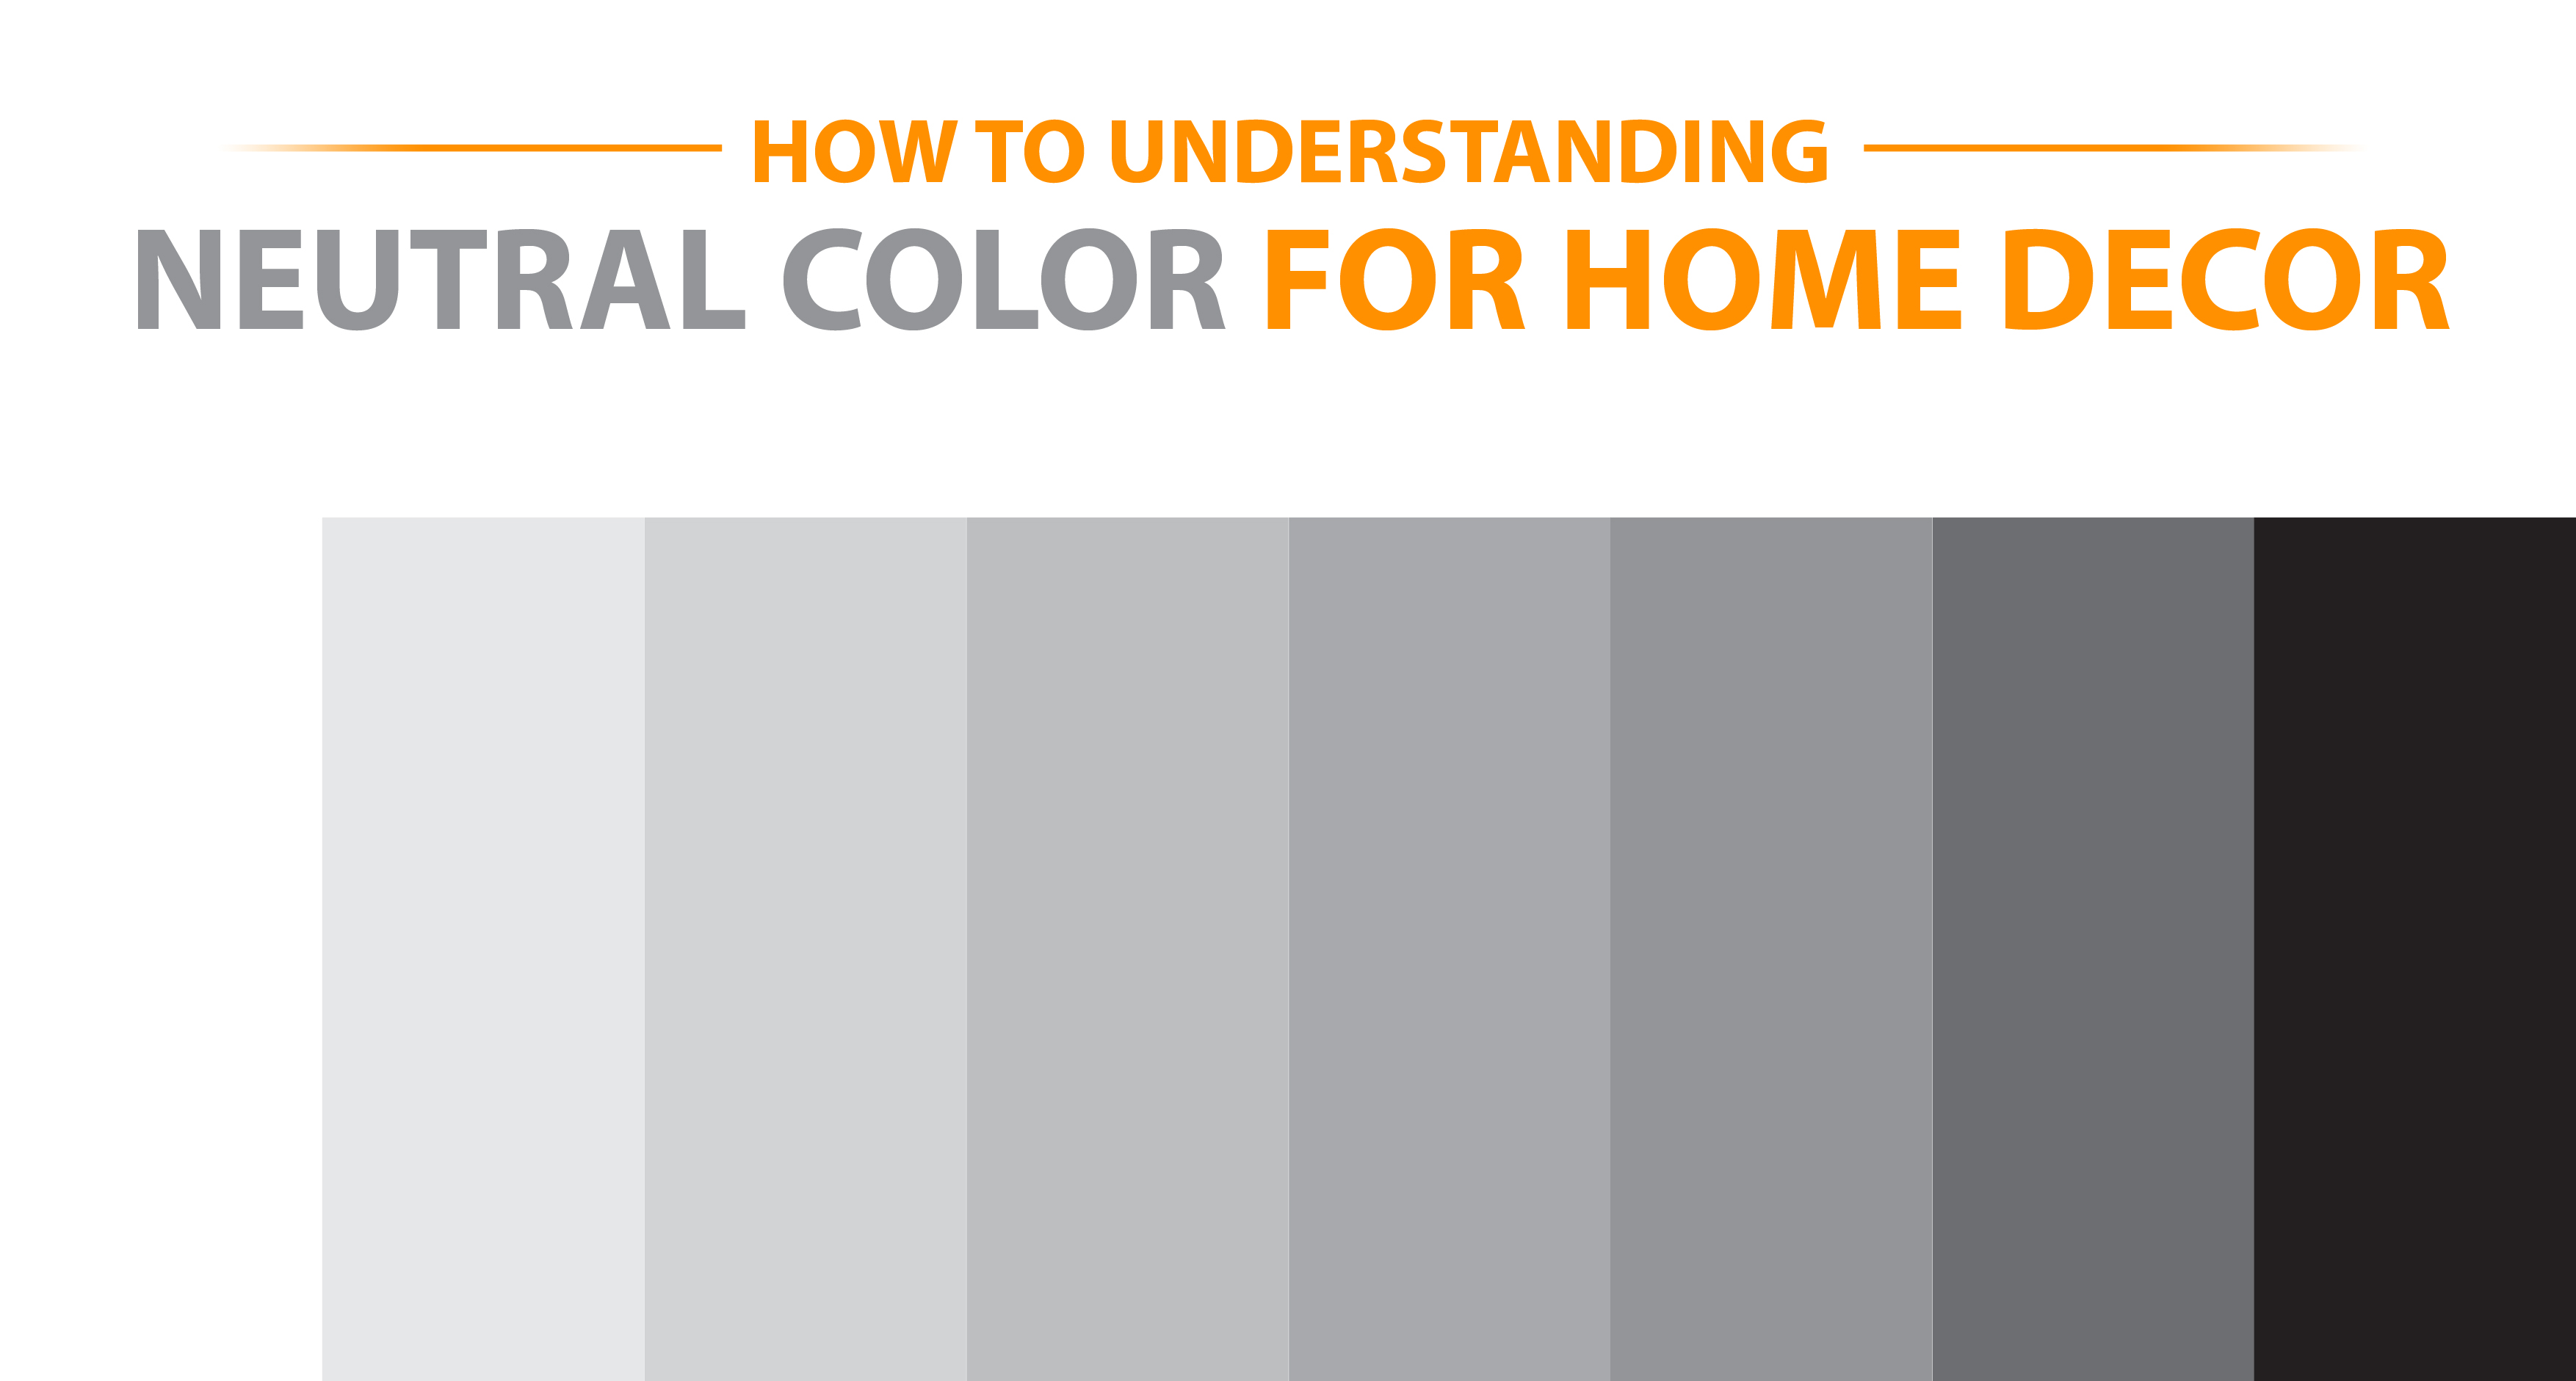 Neautral Colors how to understanding neutral color scheme for home decor | roy